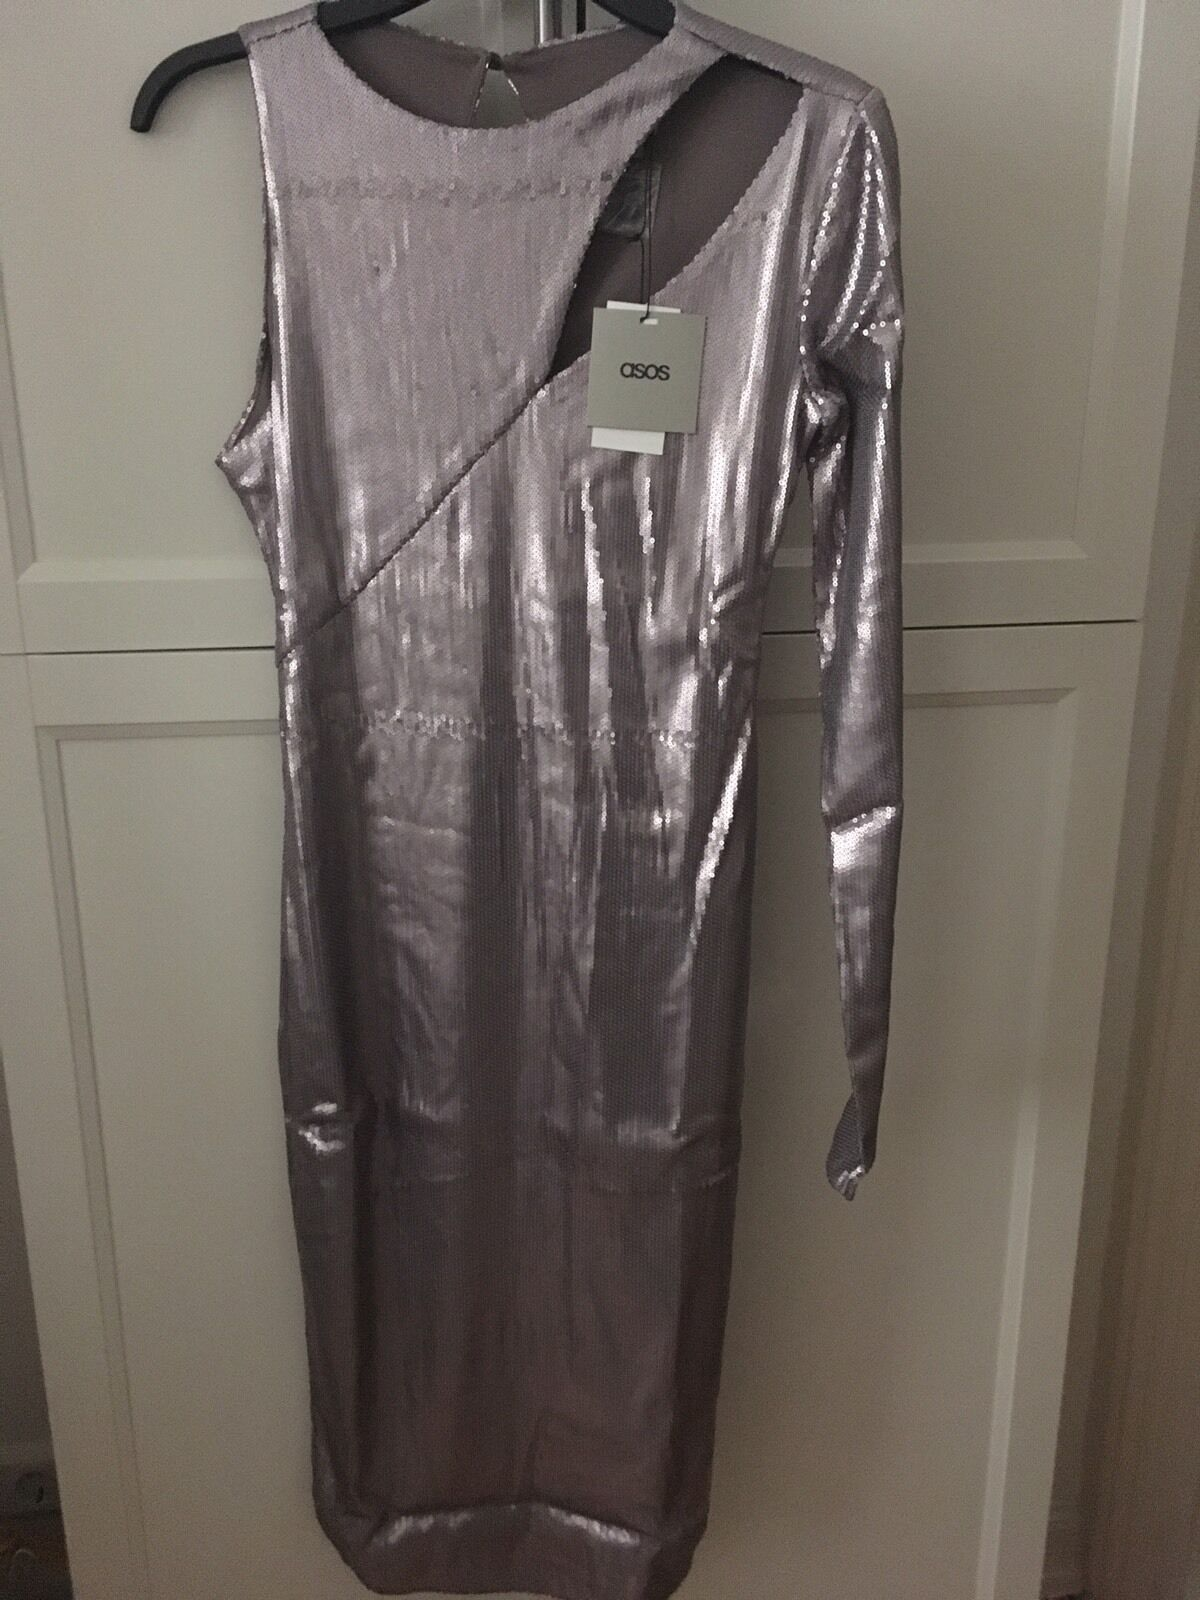 Asos Pailletten Kleid Schulterfrei Silbermatt Gr 40 Midi Party Club Neu